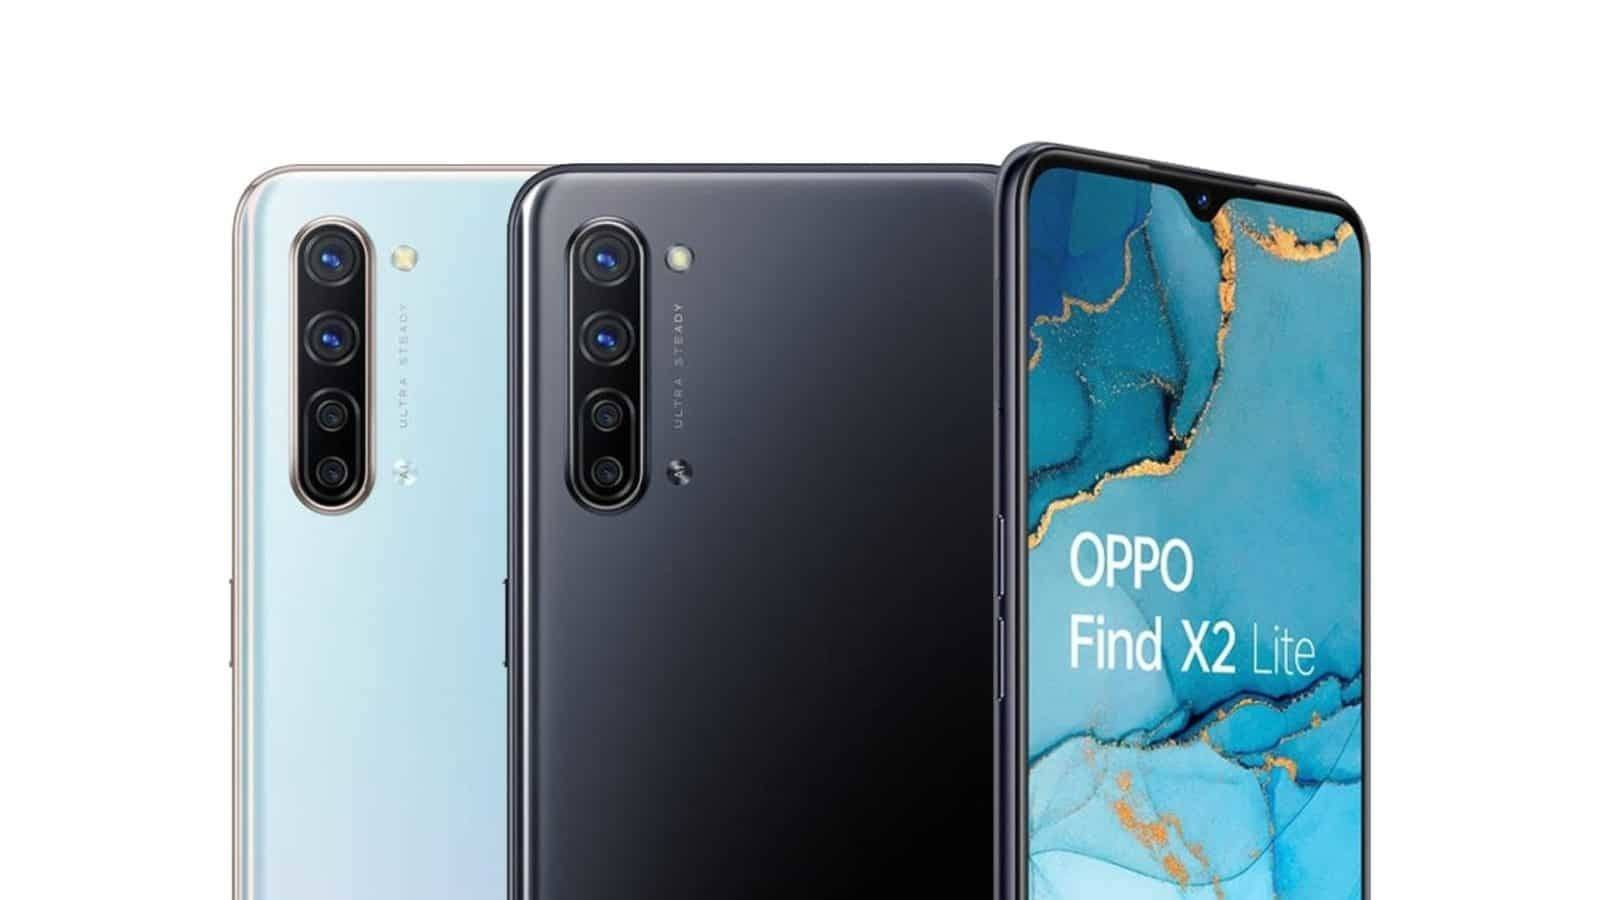 Oppo-Find-X2-Lite-smartphone-android